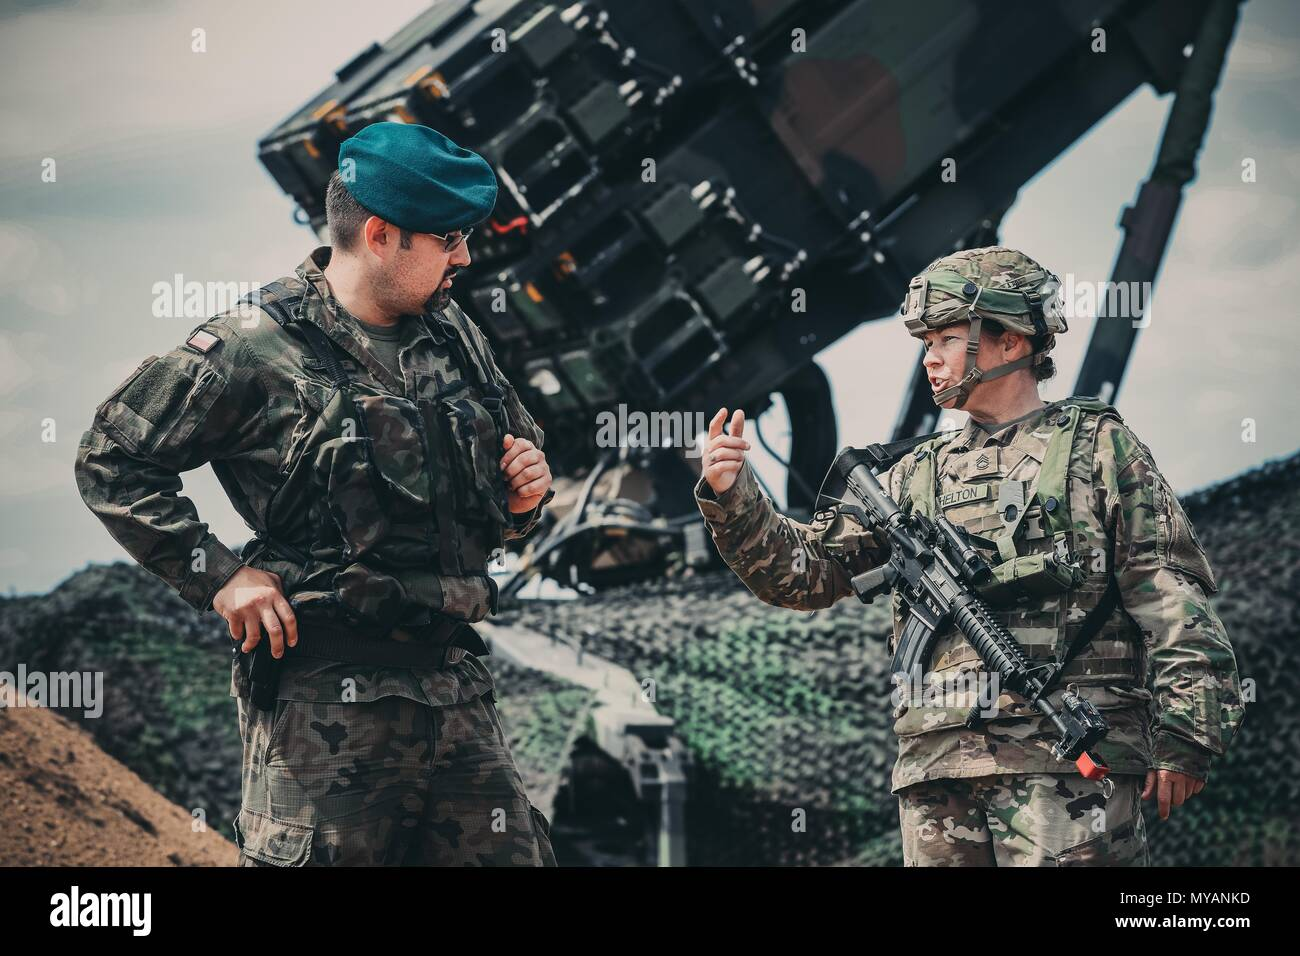 Cpt, June 4, 2018. Grzegorz Piskiewcz, the air defense officer, 12th Mechanized Division Headquarters, and Sgt. 1st Class Paige Shelton from the 5th Battalion, 7th Air Defense Artillery Regiment, discuss some of the capabilities of the new U.S. Army patriot missile system in the Drawsko Pomorskie area of Poland, June 4, 2018. Educating our allies on our defense strategies and weapon systems builds confidence among our multinational partners across the globe. (Michigan Army National Guard photo by Spc. Aaron Good/Released). () - Stock Image